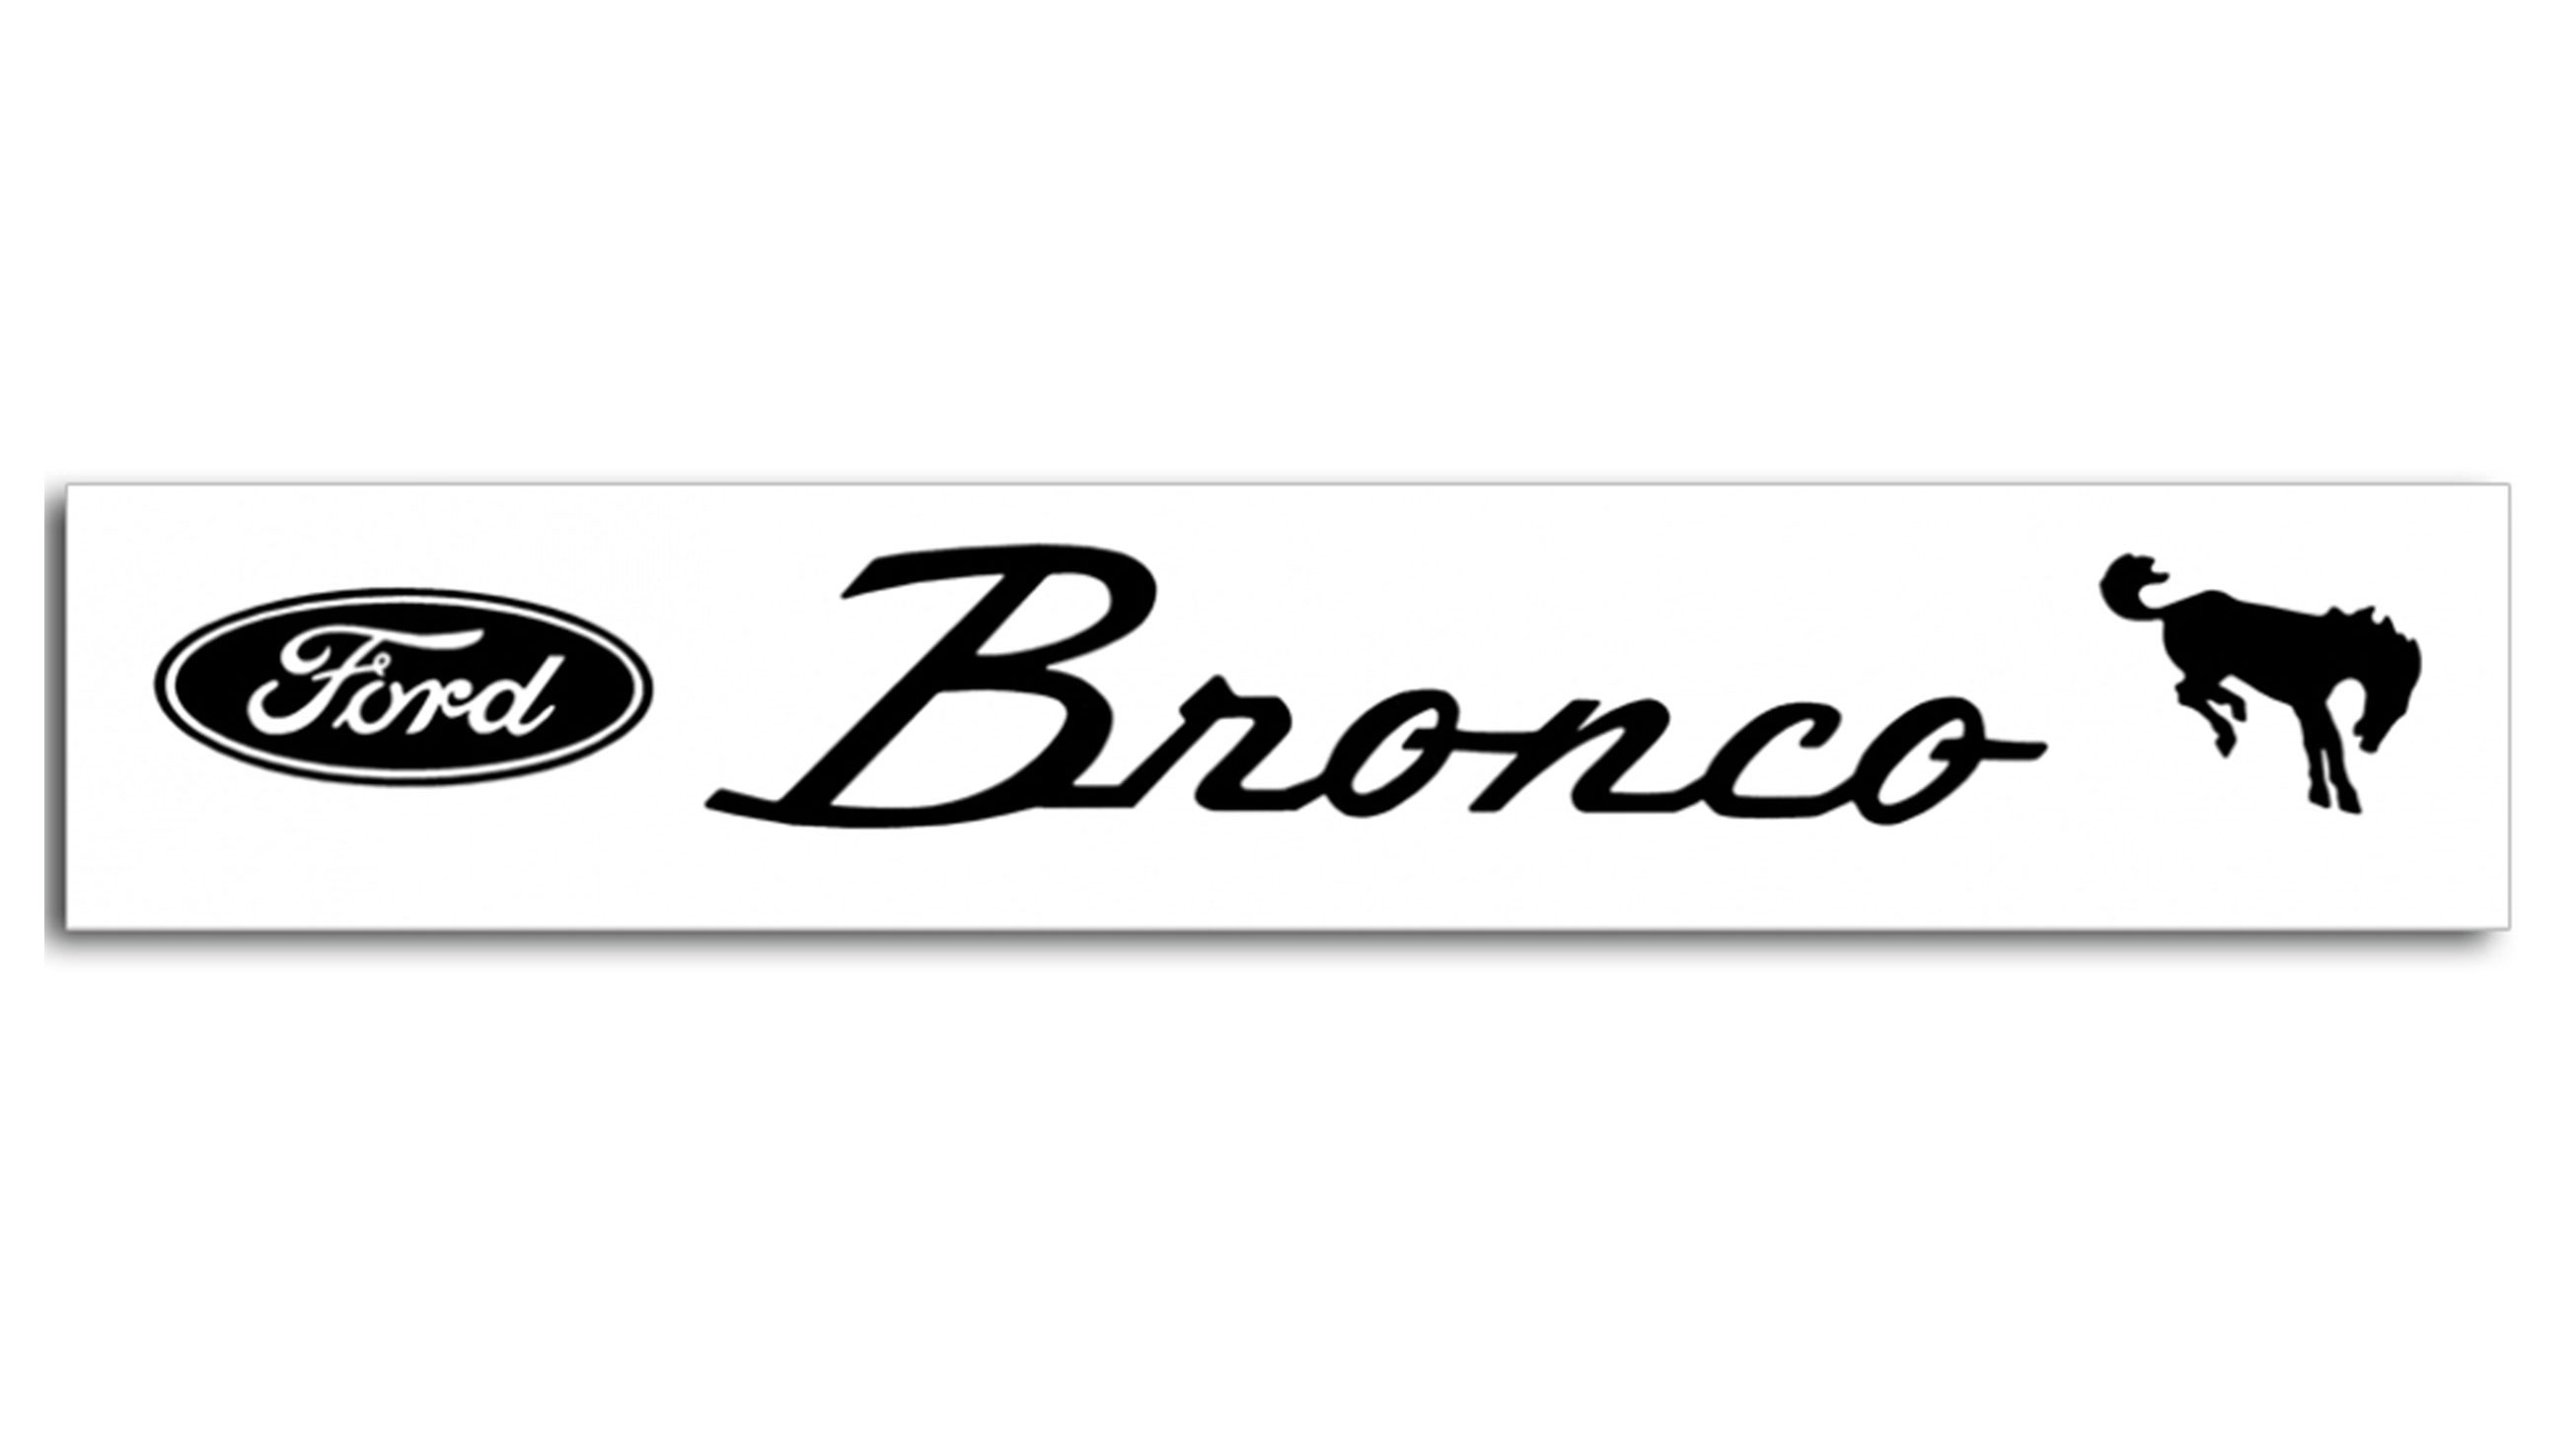 Bronco Windshield Decal w/Ford Oval & Script, Various Colors